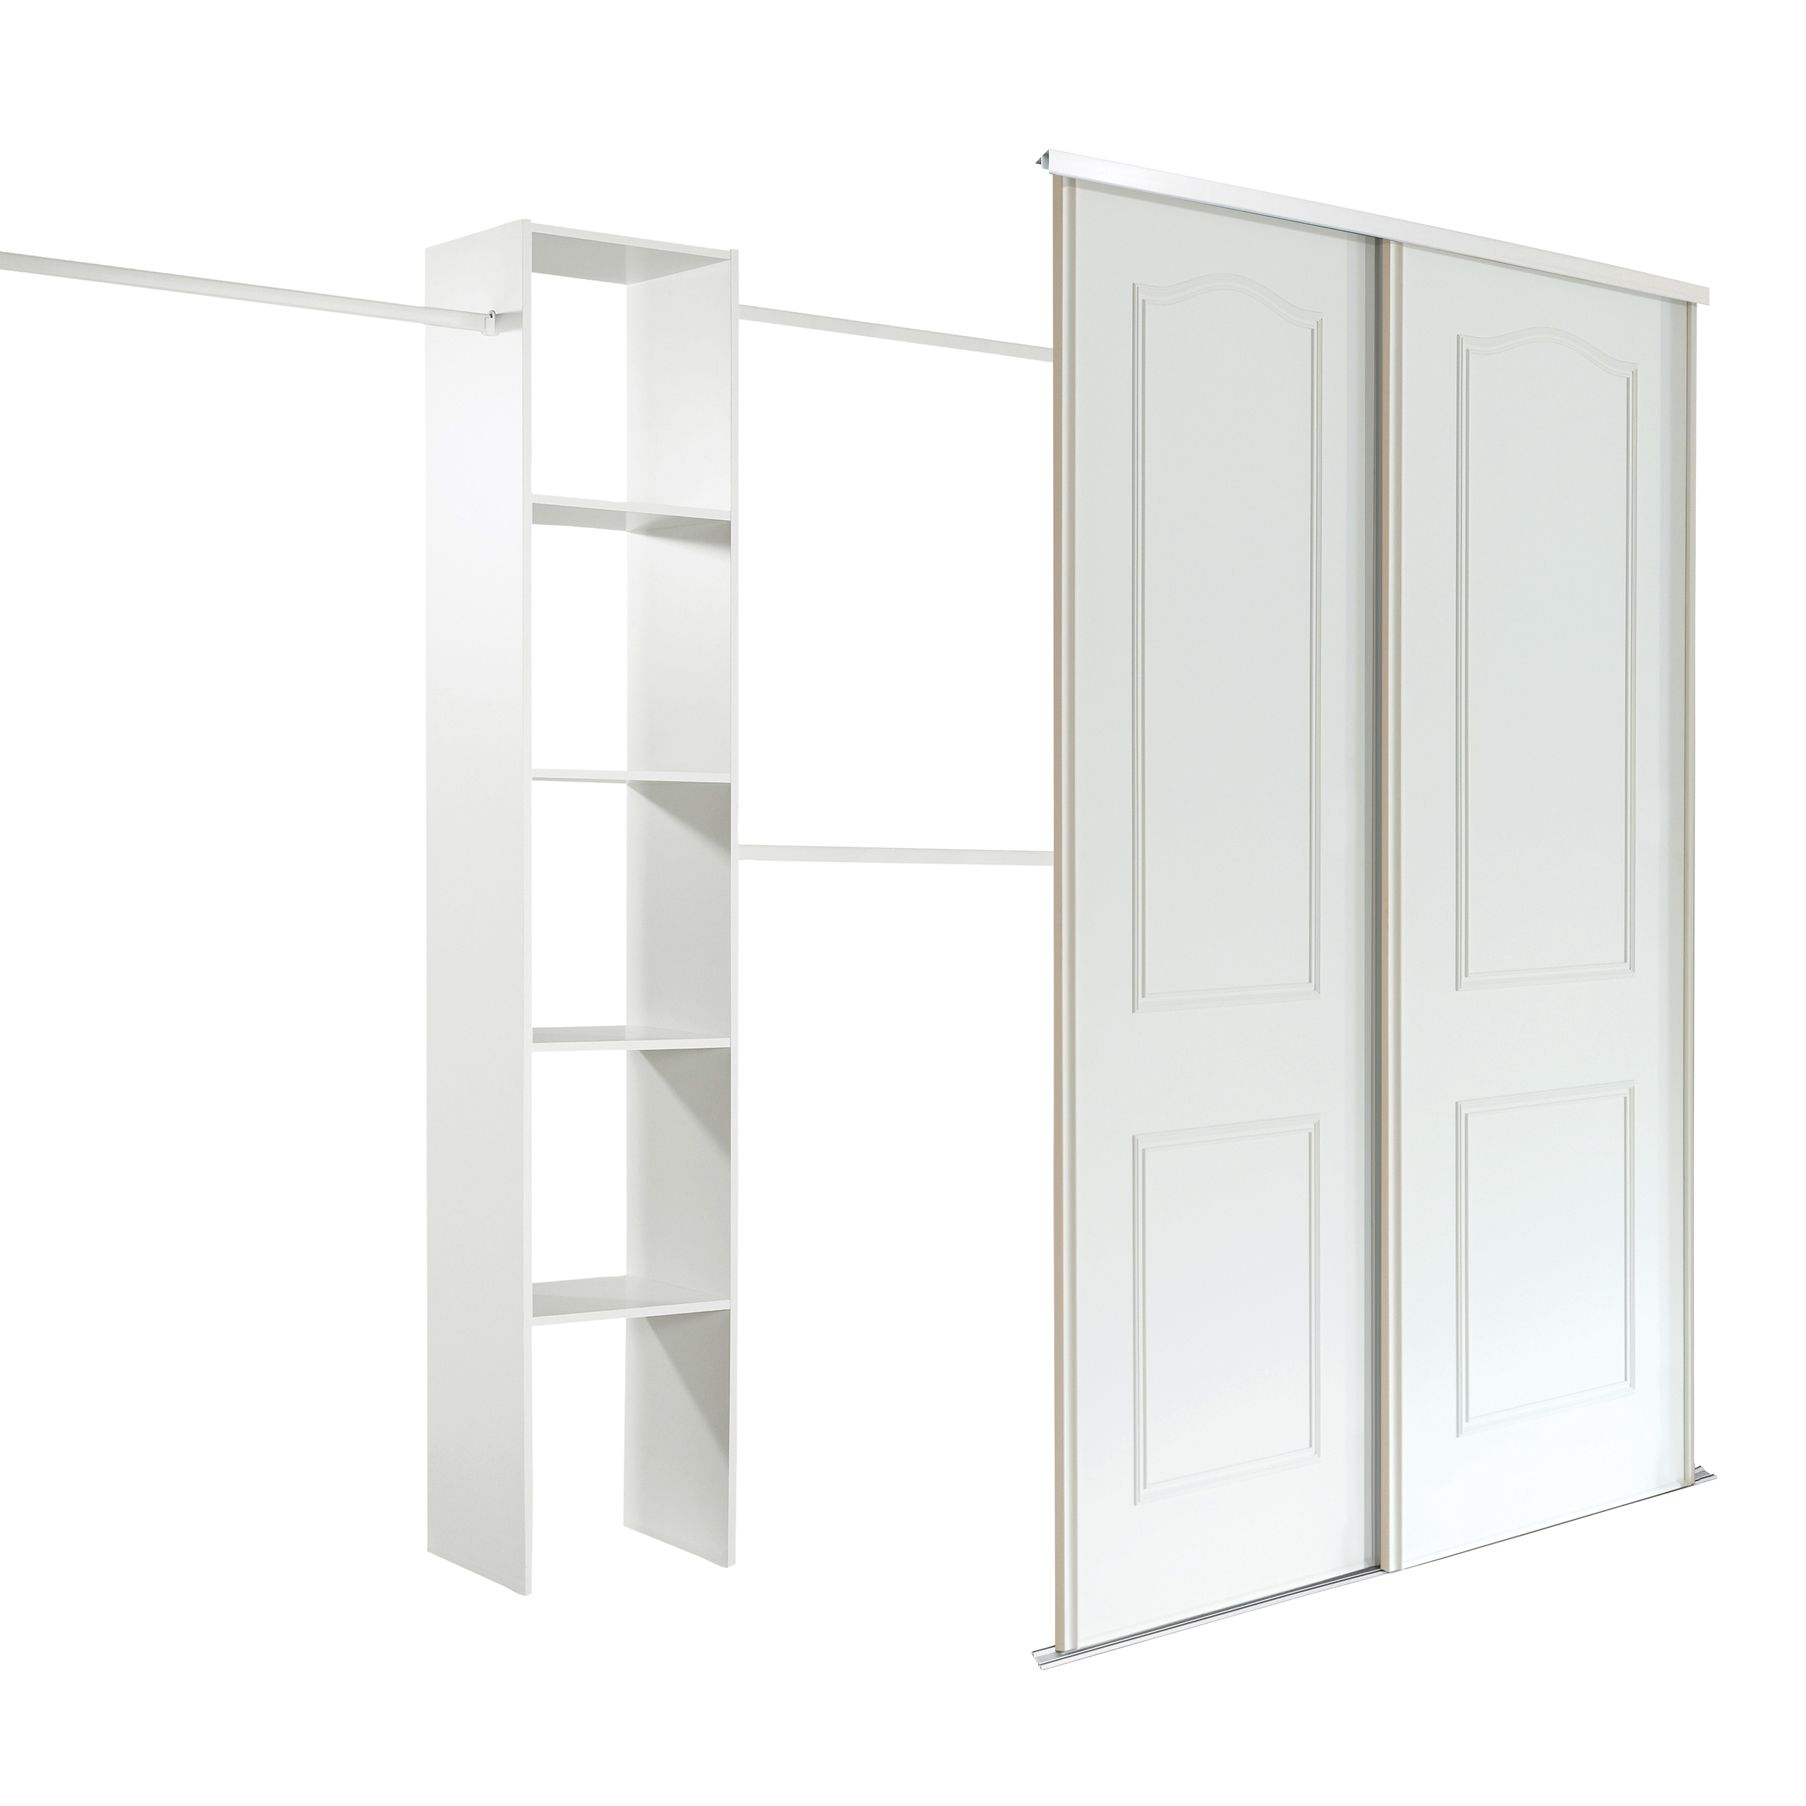 Wardrobe Kits Classic White Sliding Wardrobe Door Kit H 2220 Mm W 762